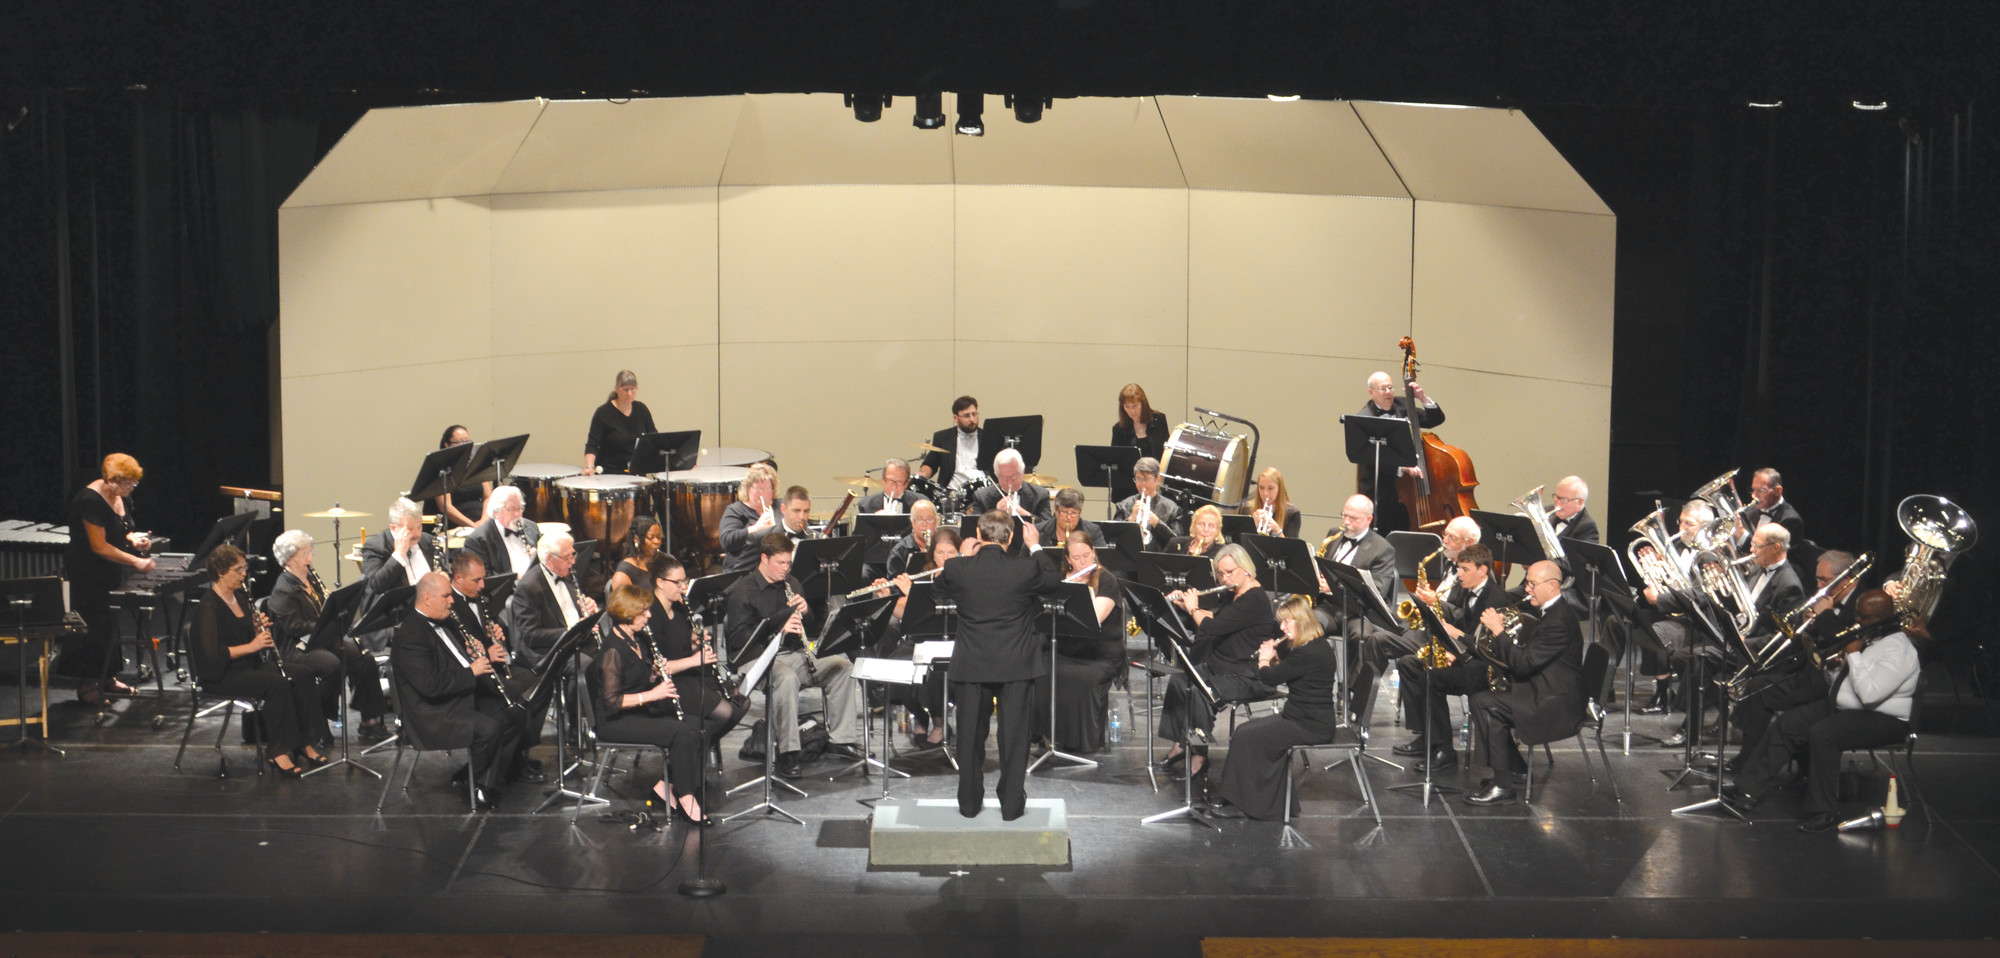 The Sumter Community Concert Band will present a spring concert Sunday afternoon at Patriot Hall. Admission to the concert is free.